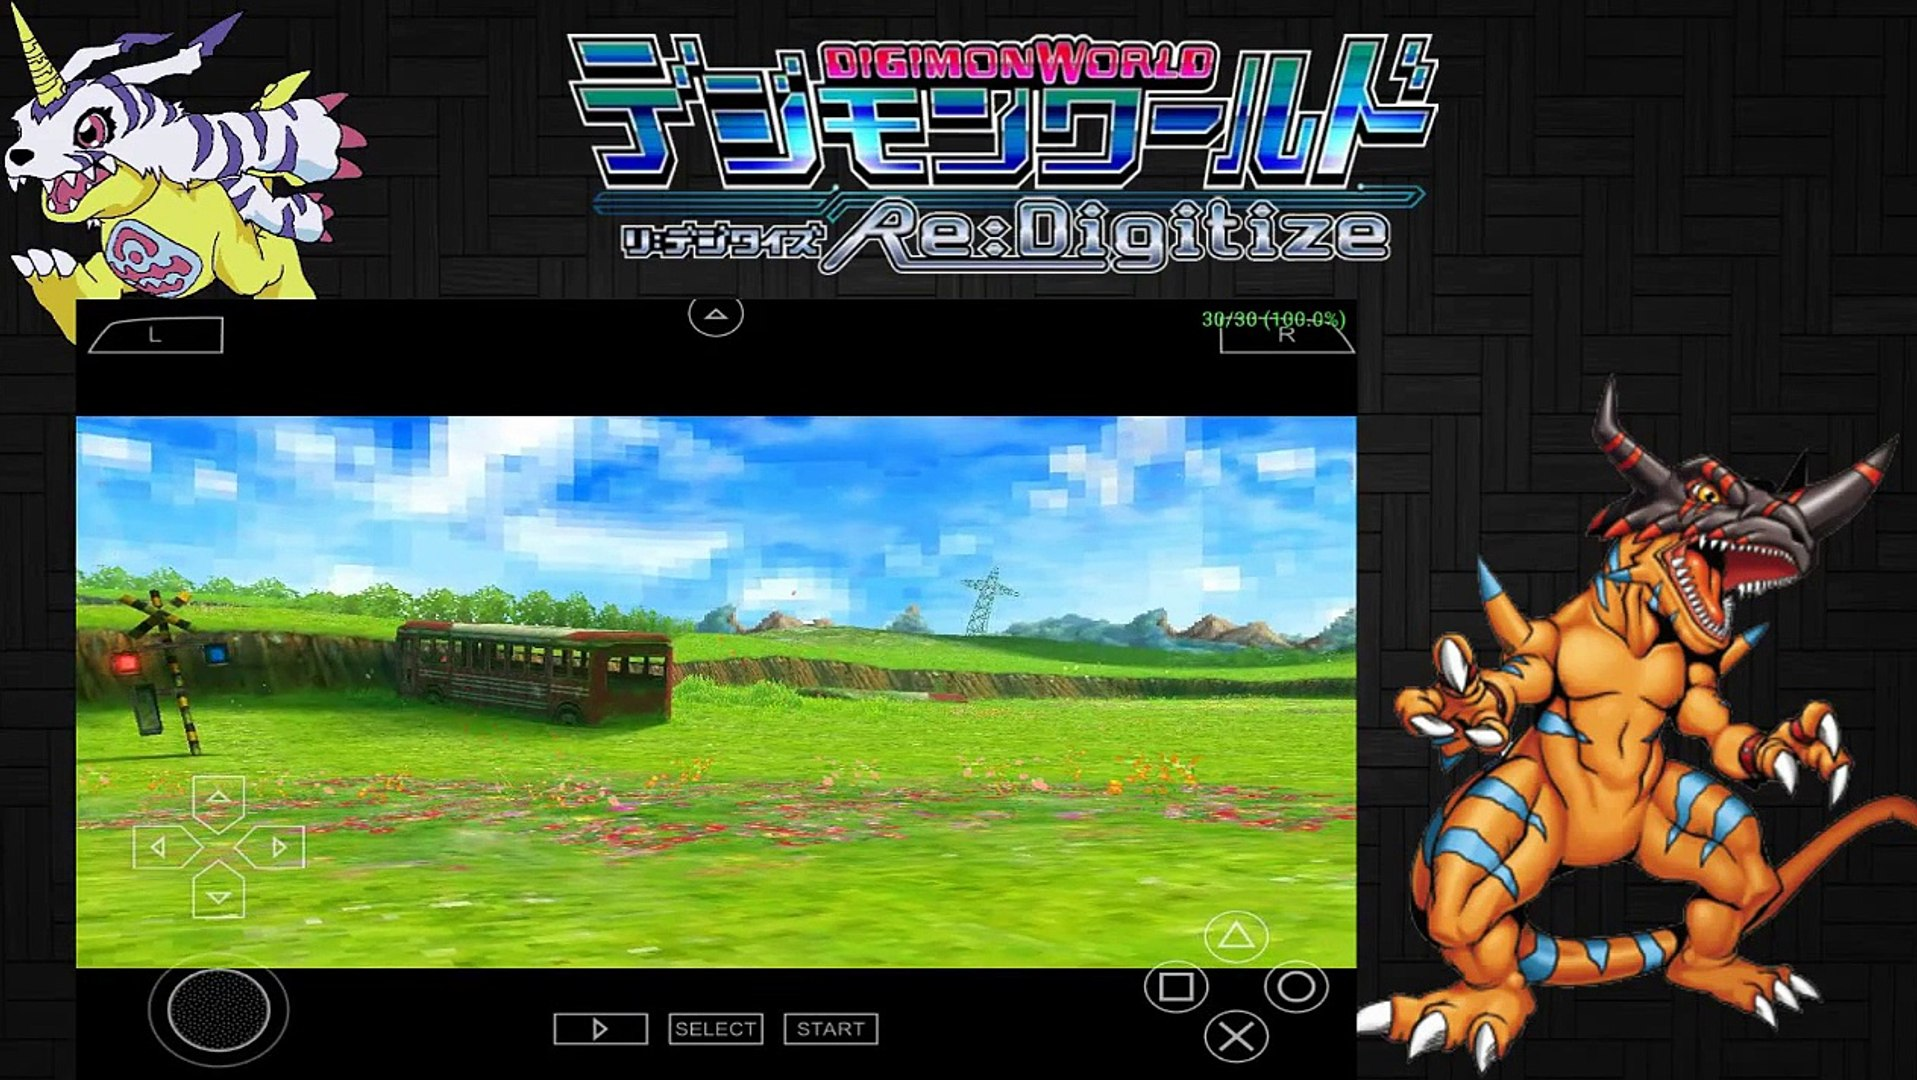 PPSSPP v1 0 1 0 Digimon World Re Digitize English GAMEPLAY full speed  settings 2015 (HD)